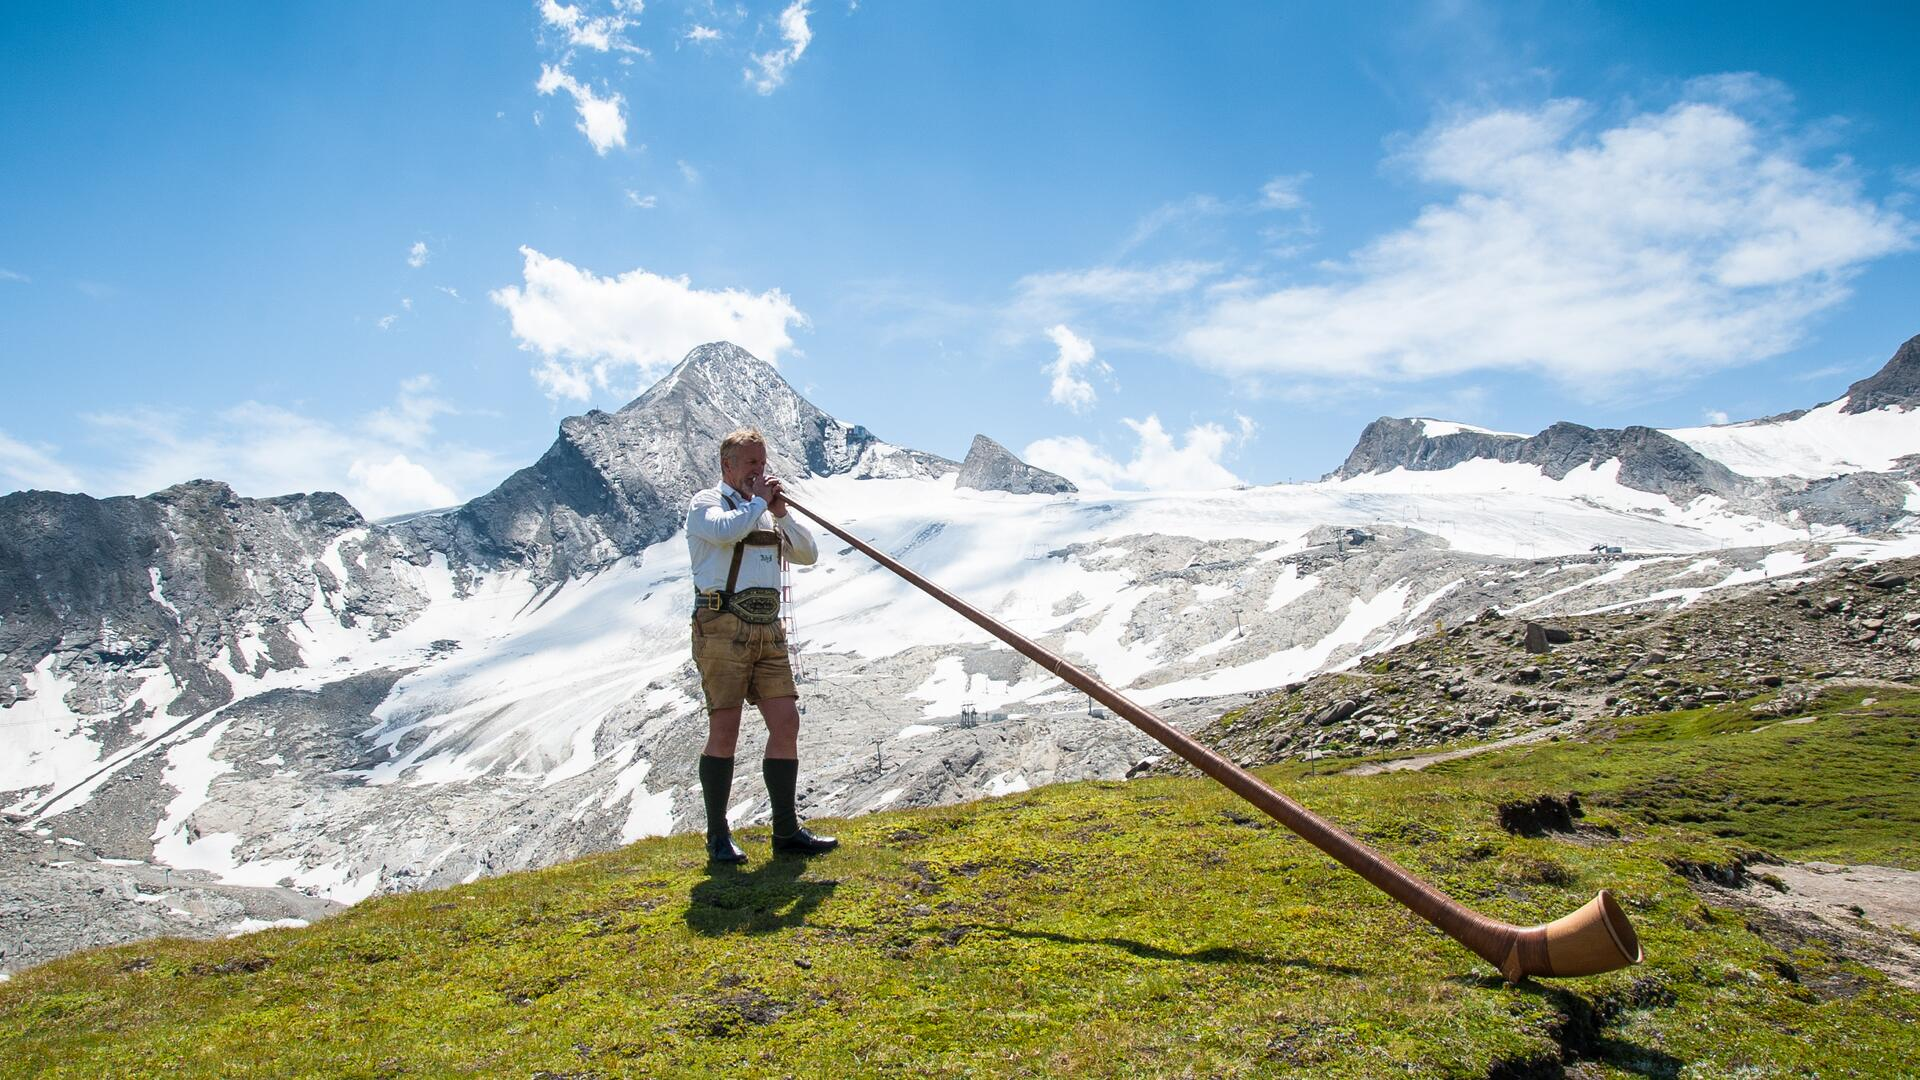 Meanwhile, the annual GIPFELKLÄNGE, an alphorn festival on the Kitzsteinhorn, is also a tradition | © Kitzsteinhorn